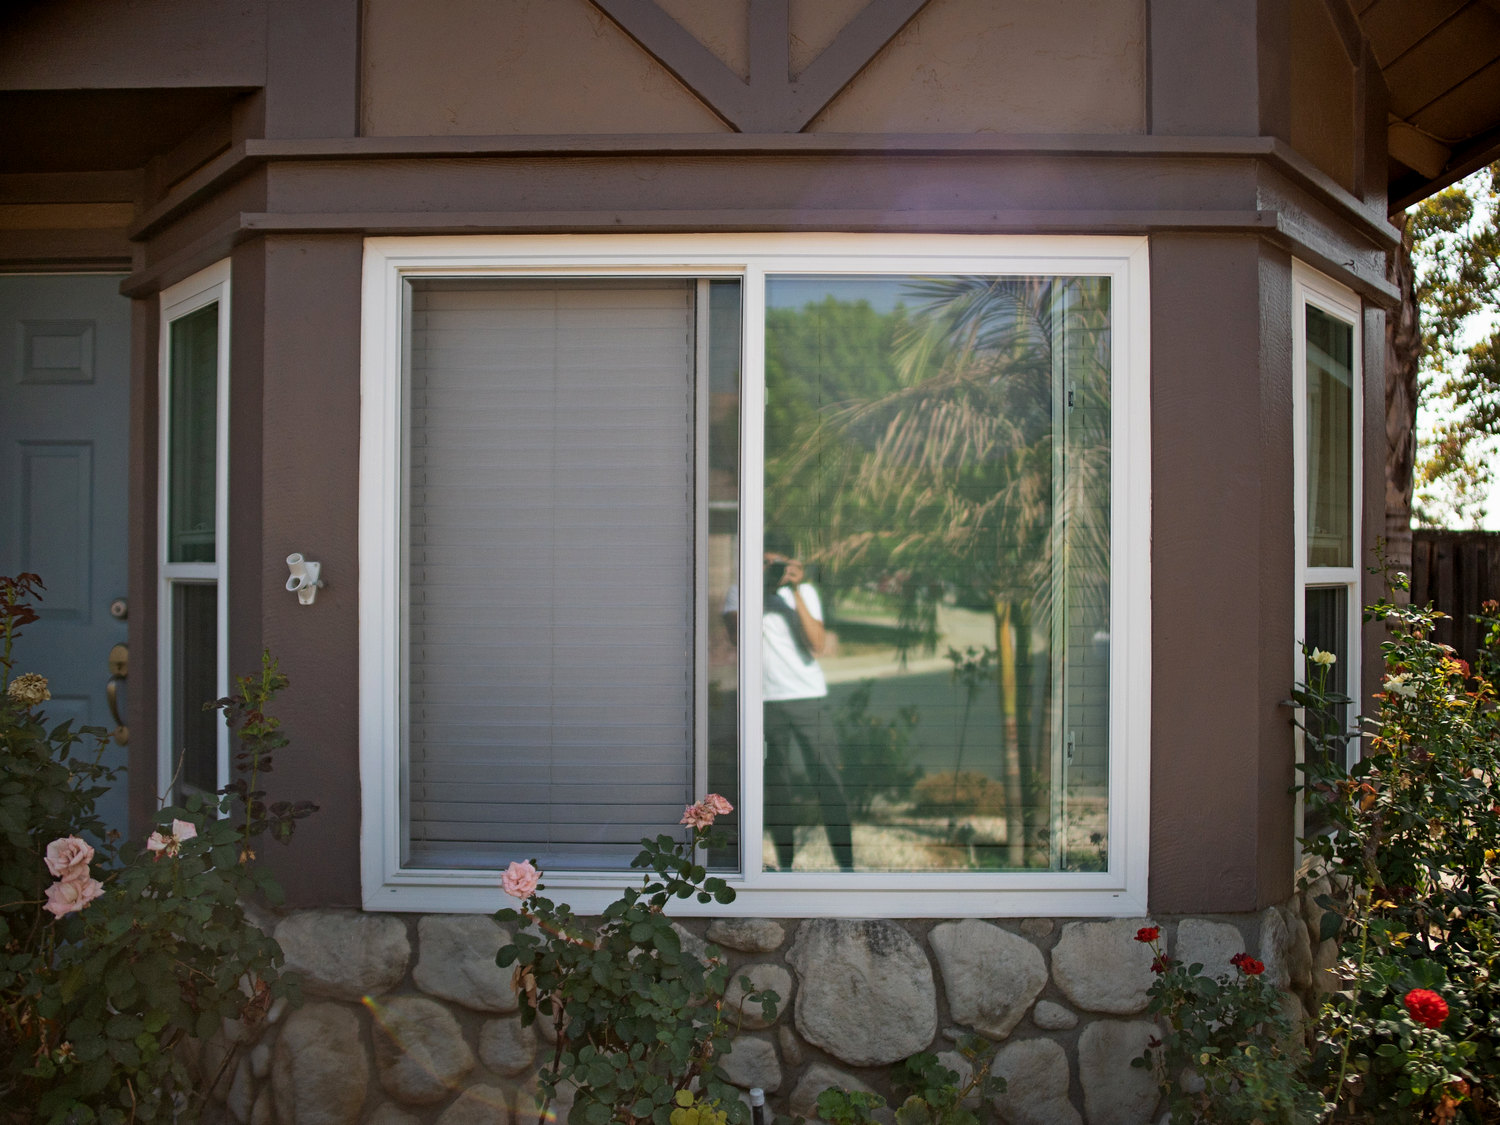 Windows Replacement in Rancho Cucamonga